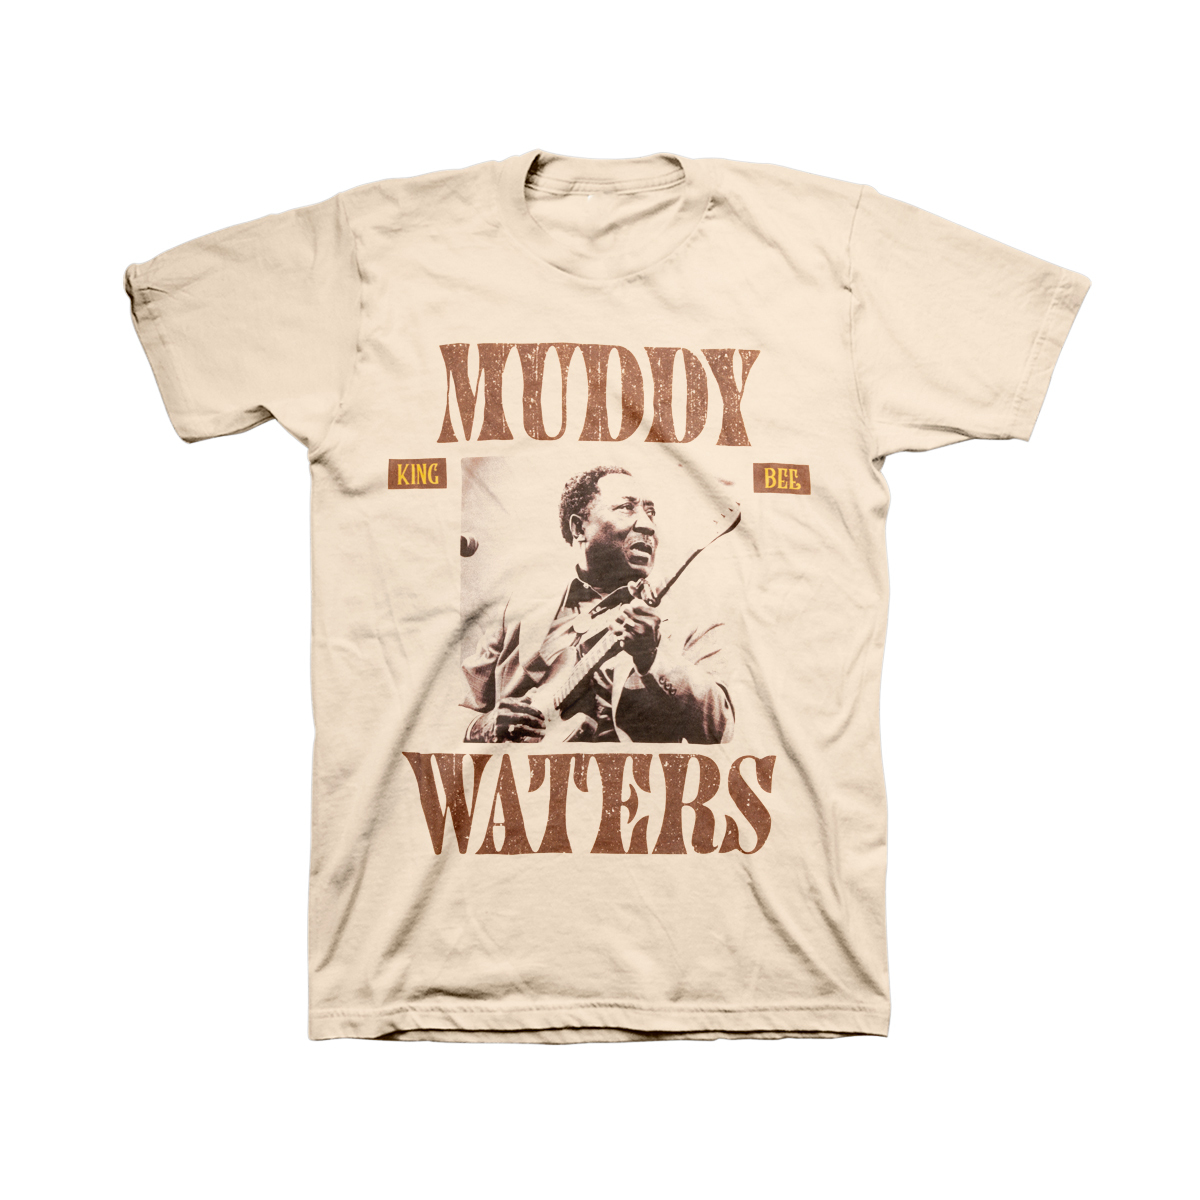 "Muddy Waters ""King Bee"" Tan T-shirt"